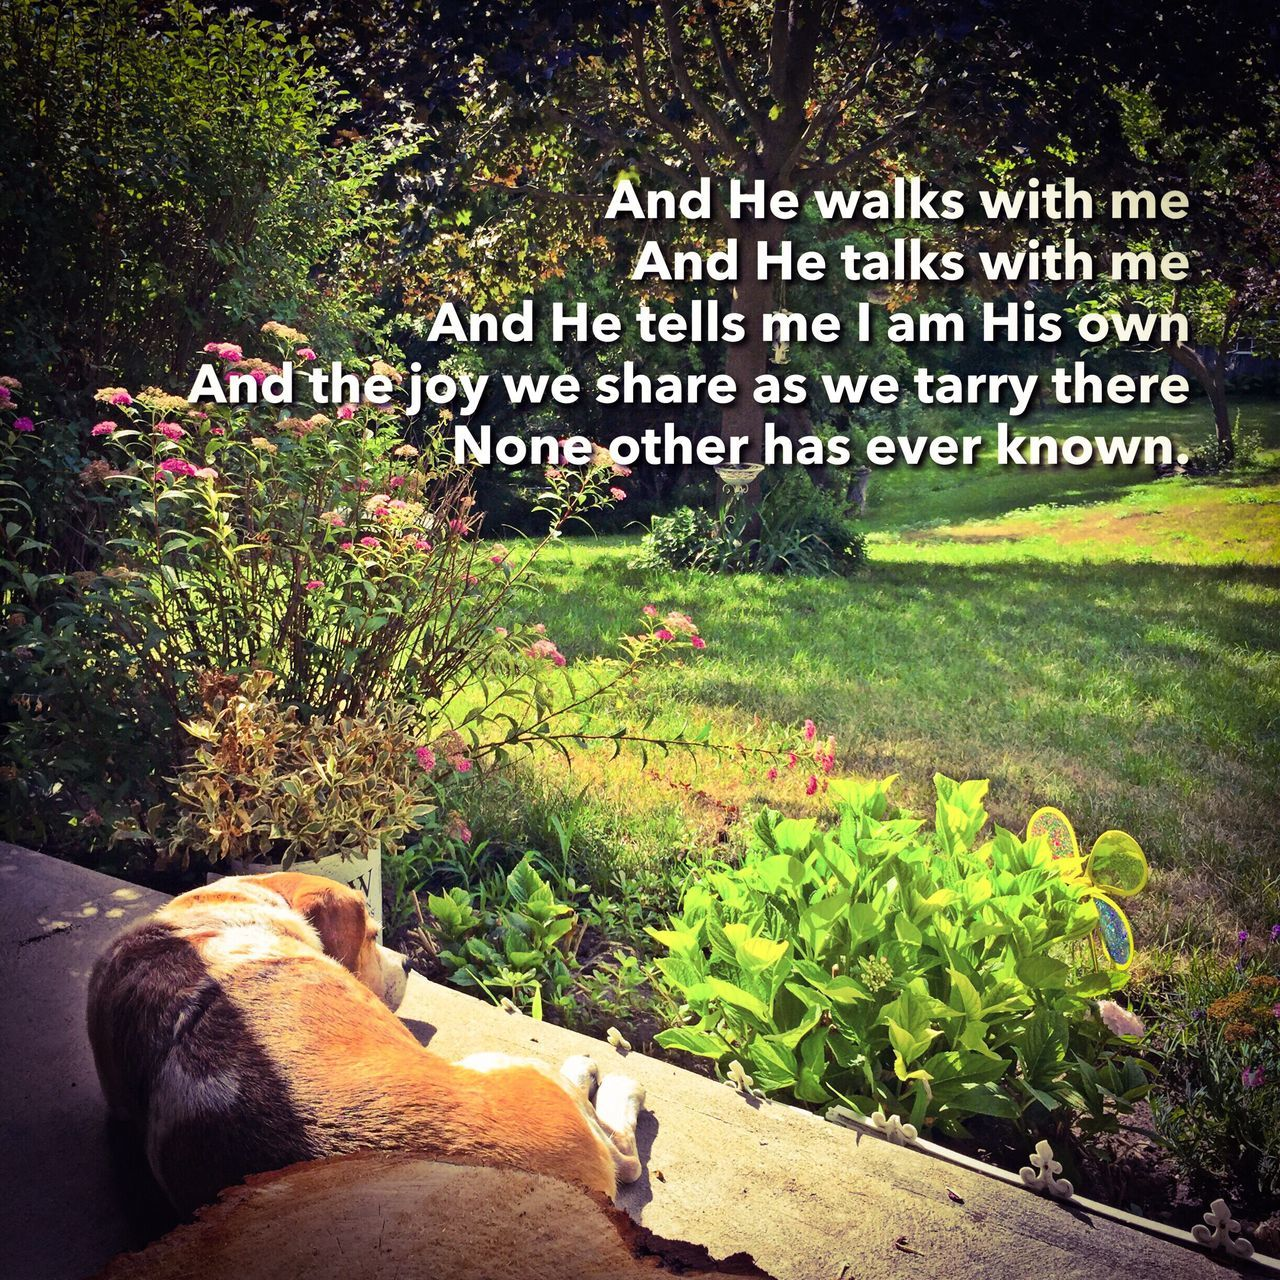 And He walks with me And He talks with me And He tells me I am His own And the joy we share as we tarry there None other has ever known